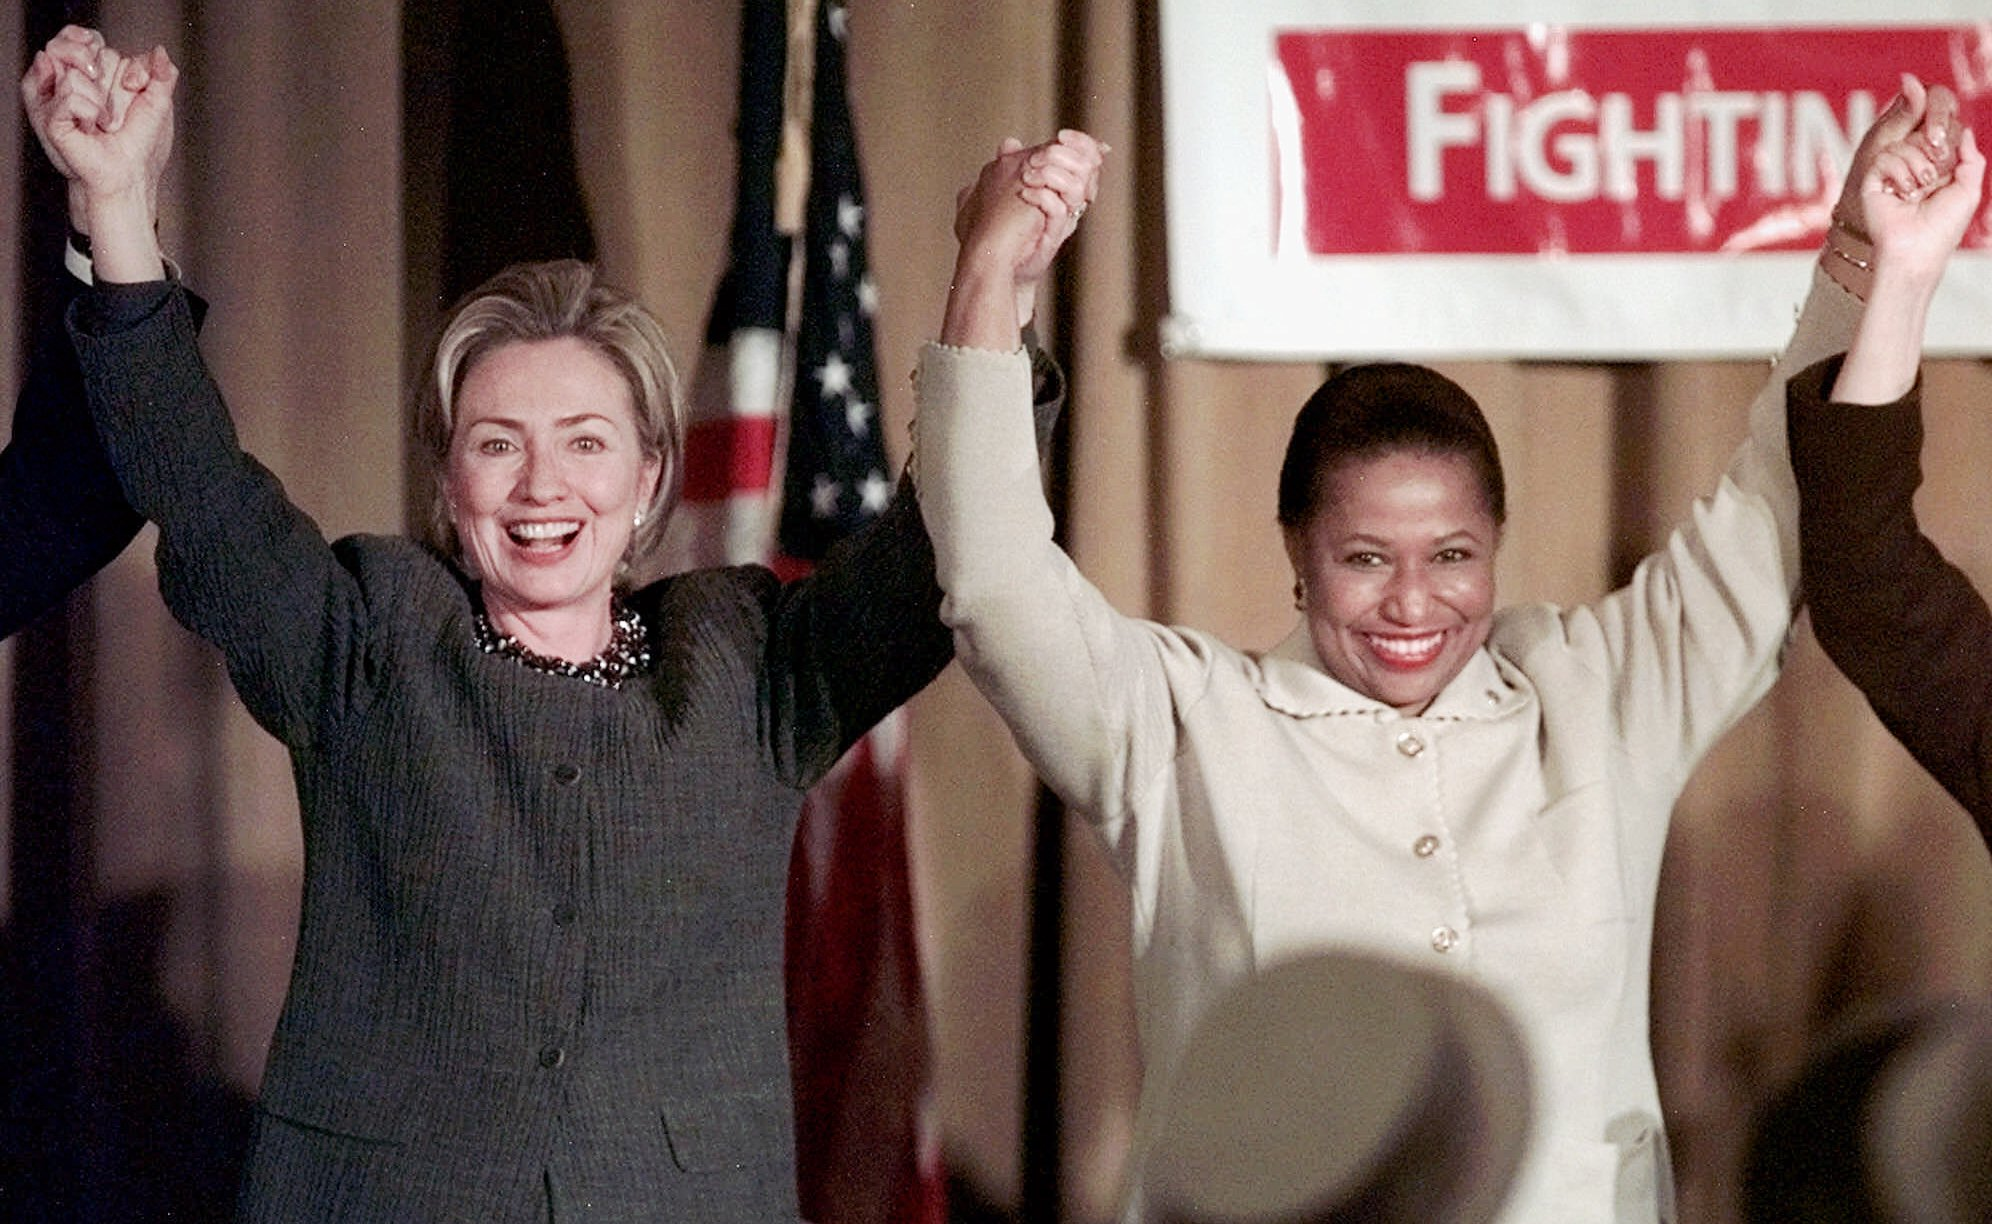 Then-First lady Hillary Rodham Clinton raises hands with then-U.S. Sen. Carol Mosely-Braun, D-Ill., on Oct. 23, 1998, in Chicago. (AP Photo/Michael S. Green)